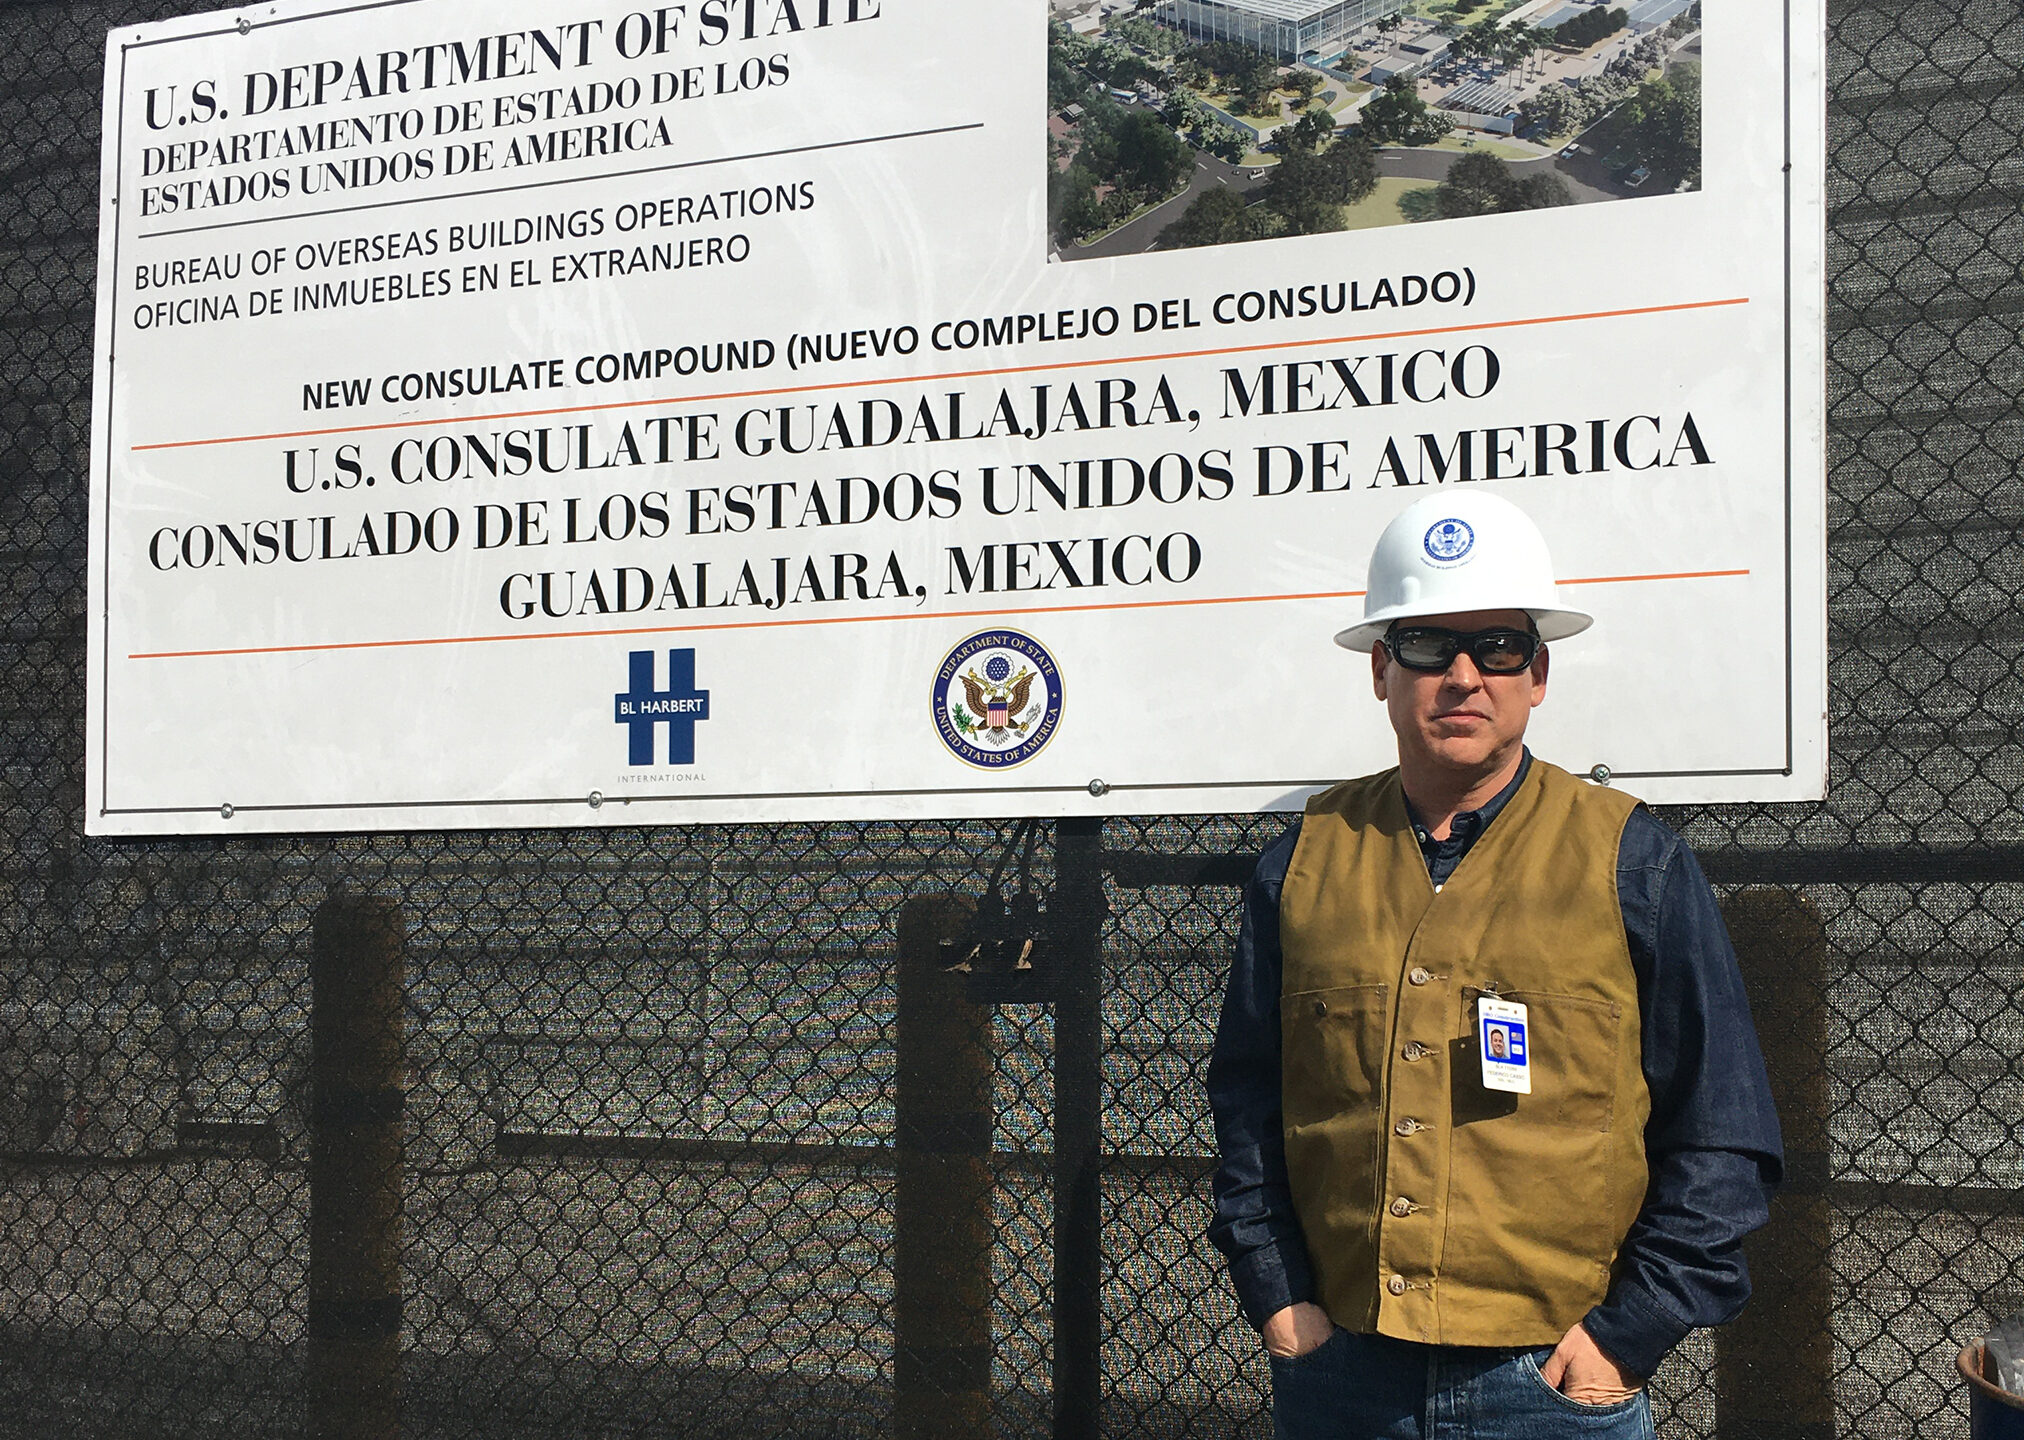 SSM Federico Casso in front of the construction site for the New Consulate Compound in Guadalajara, Mexico.